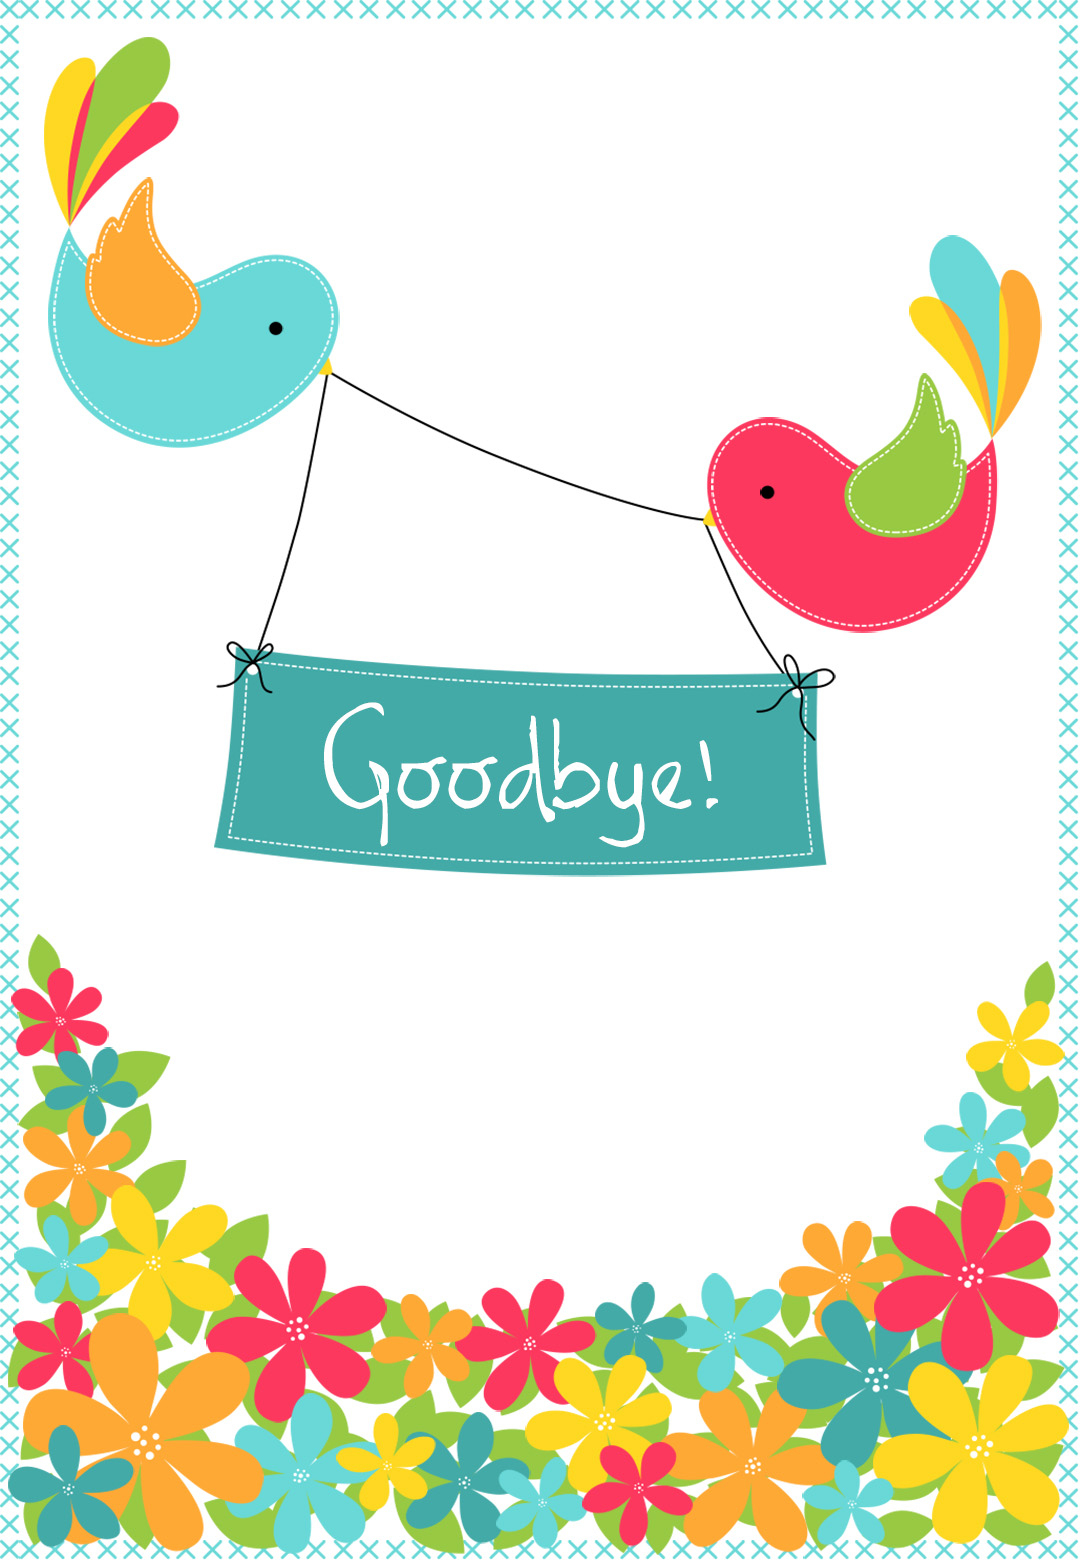 Goodbye From Your Colleagues - Free Good Luck Card | Greetings Island - Free Printable Farewell Card For Coworker